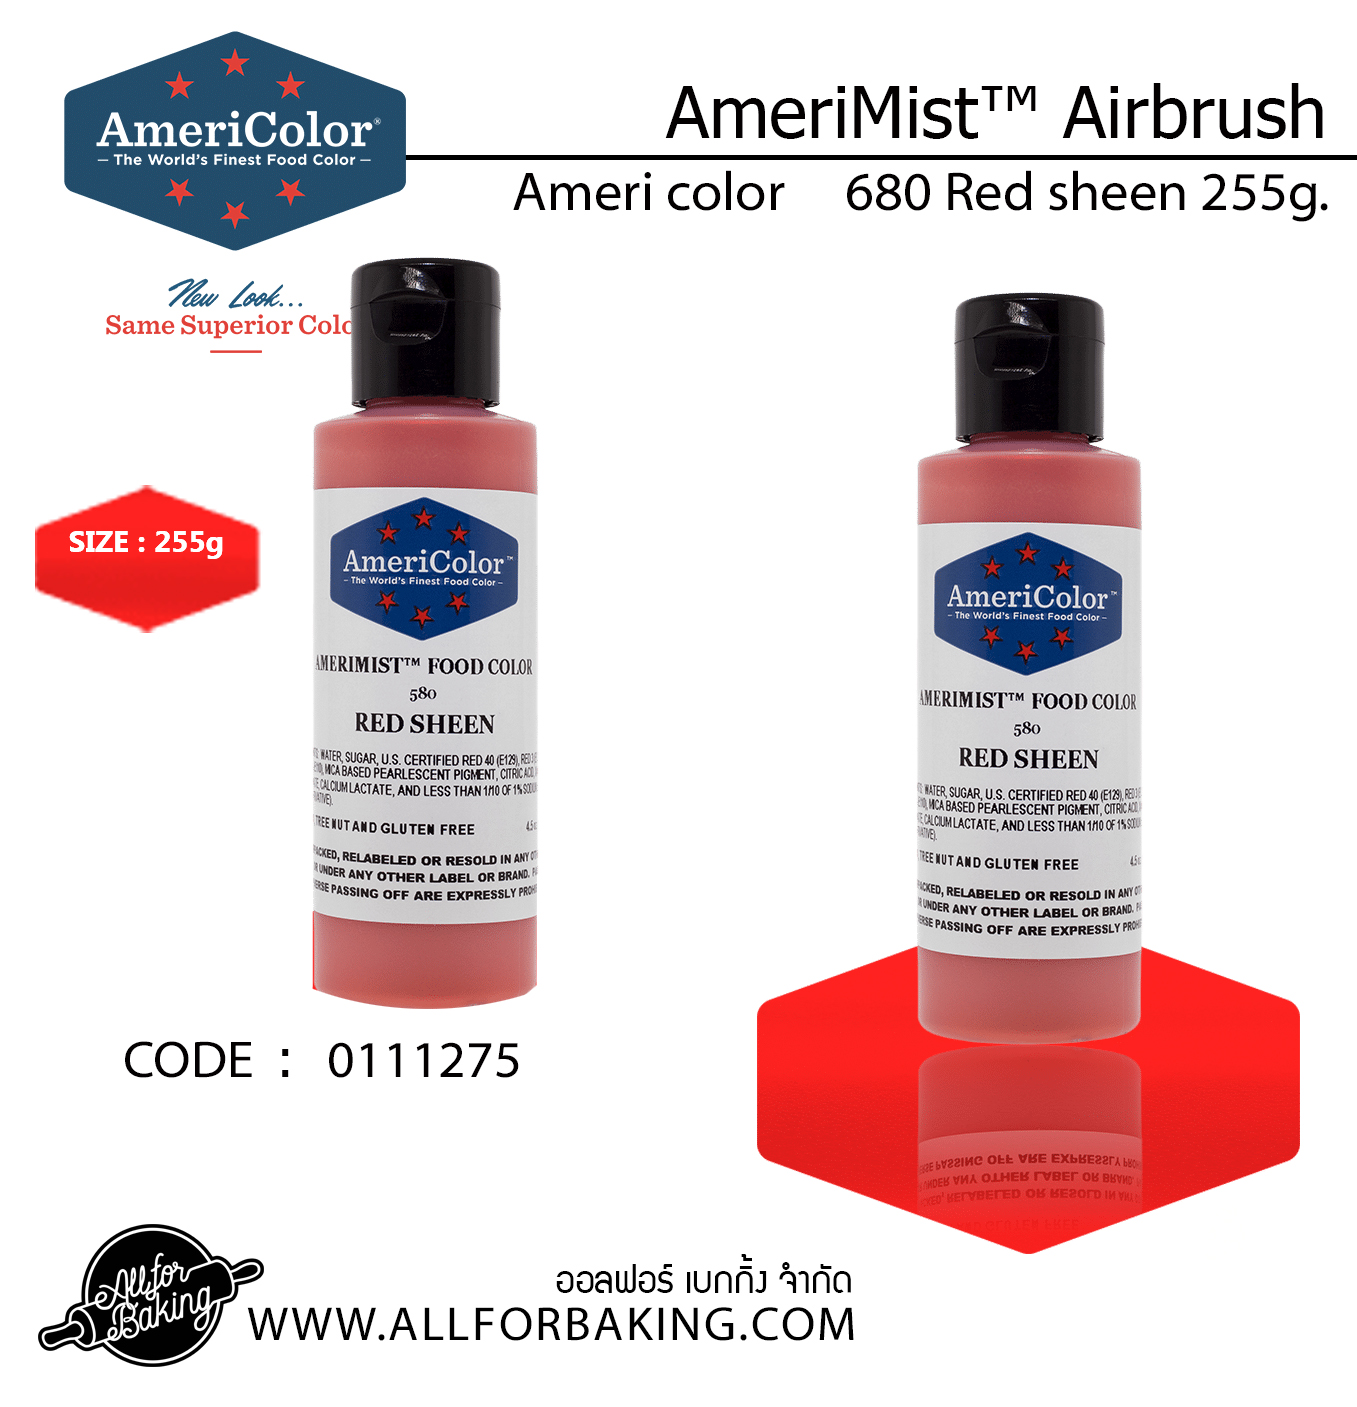 Ameri color 680 Red sheen 255g. (255 g)